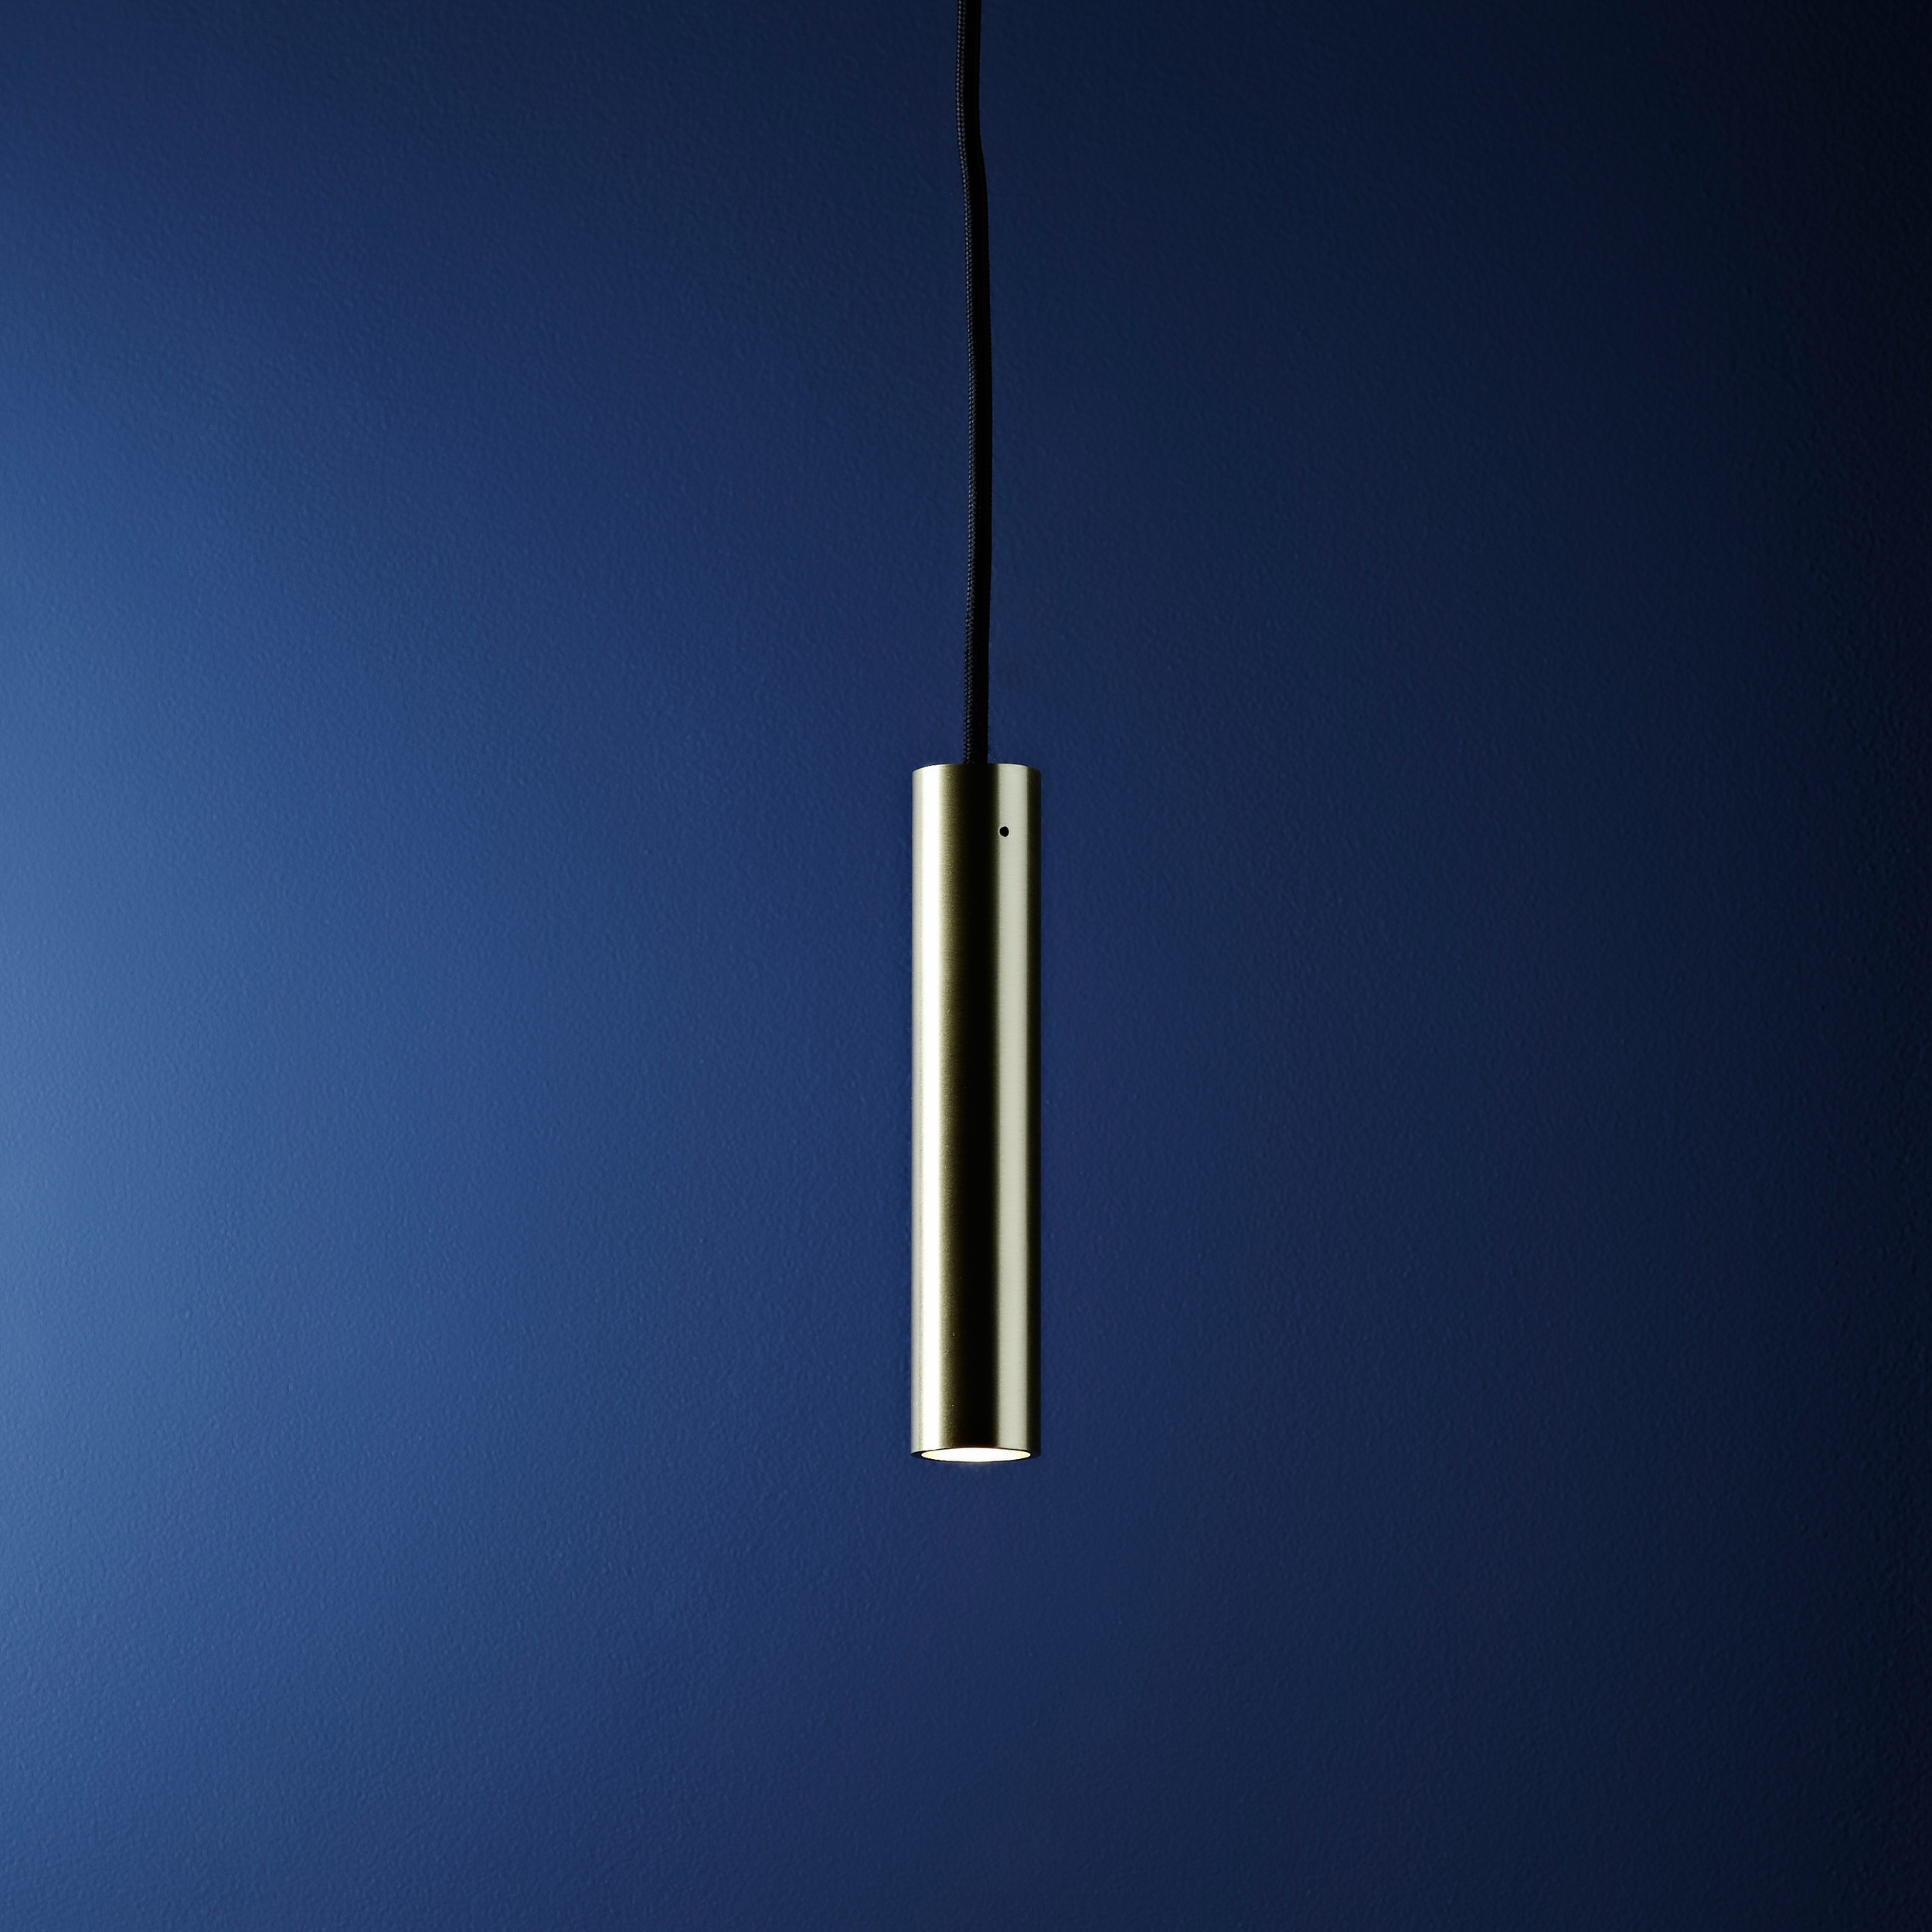 ISM Objects_Luxe_square_Pendant.jpg